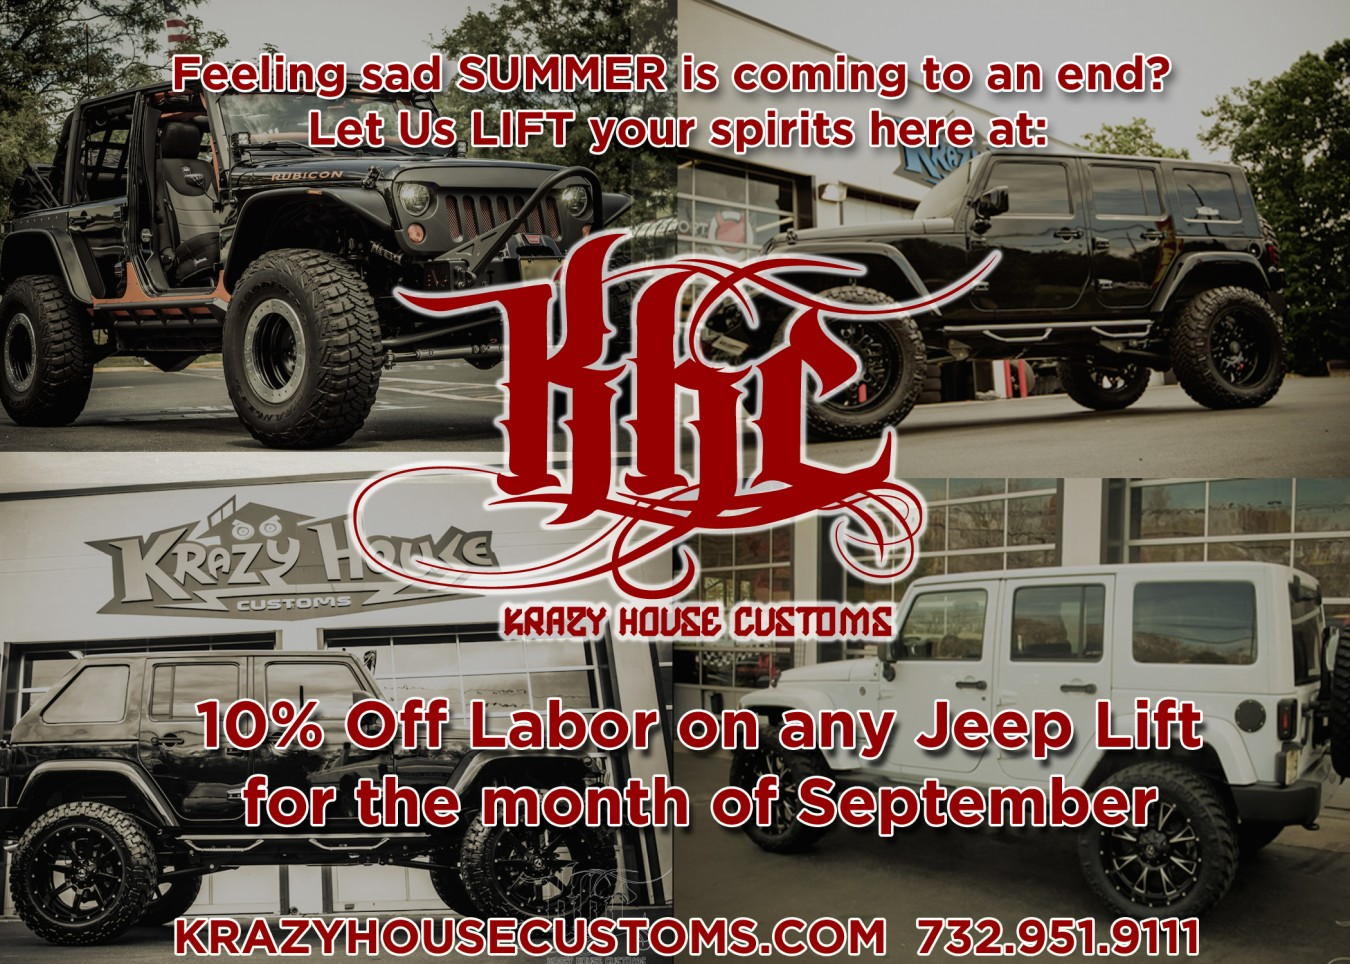 jeep_lift_labor_Special